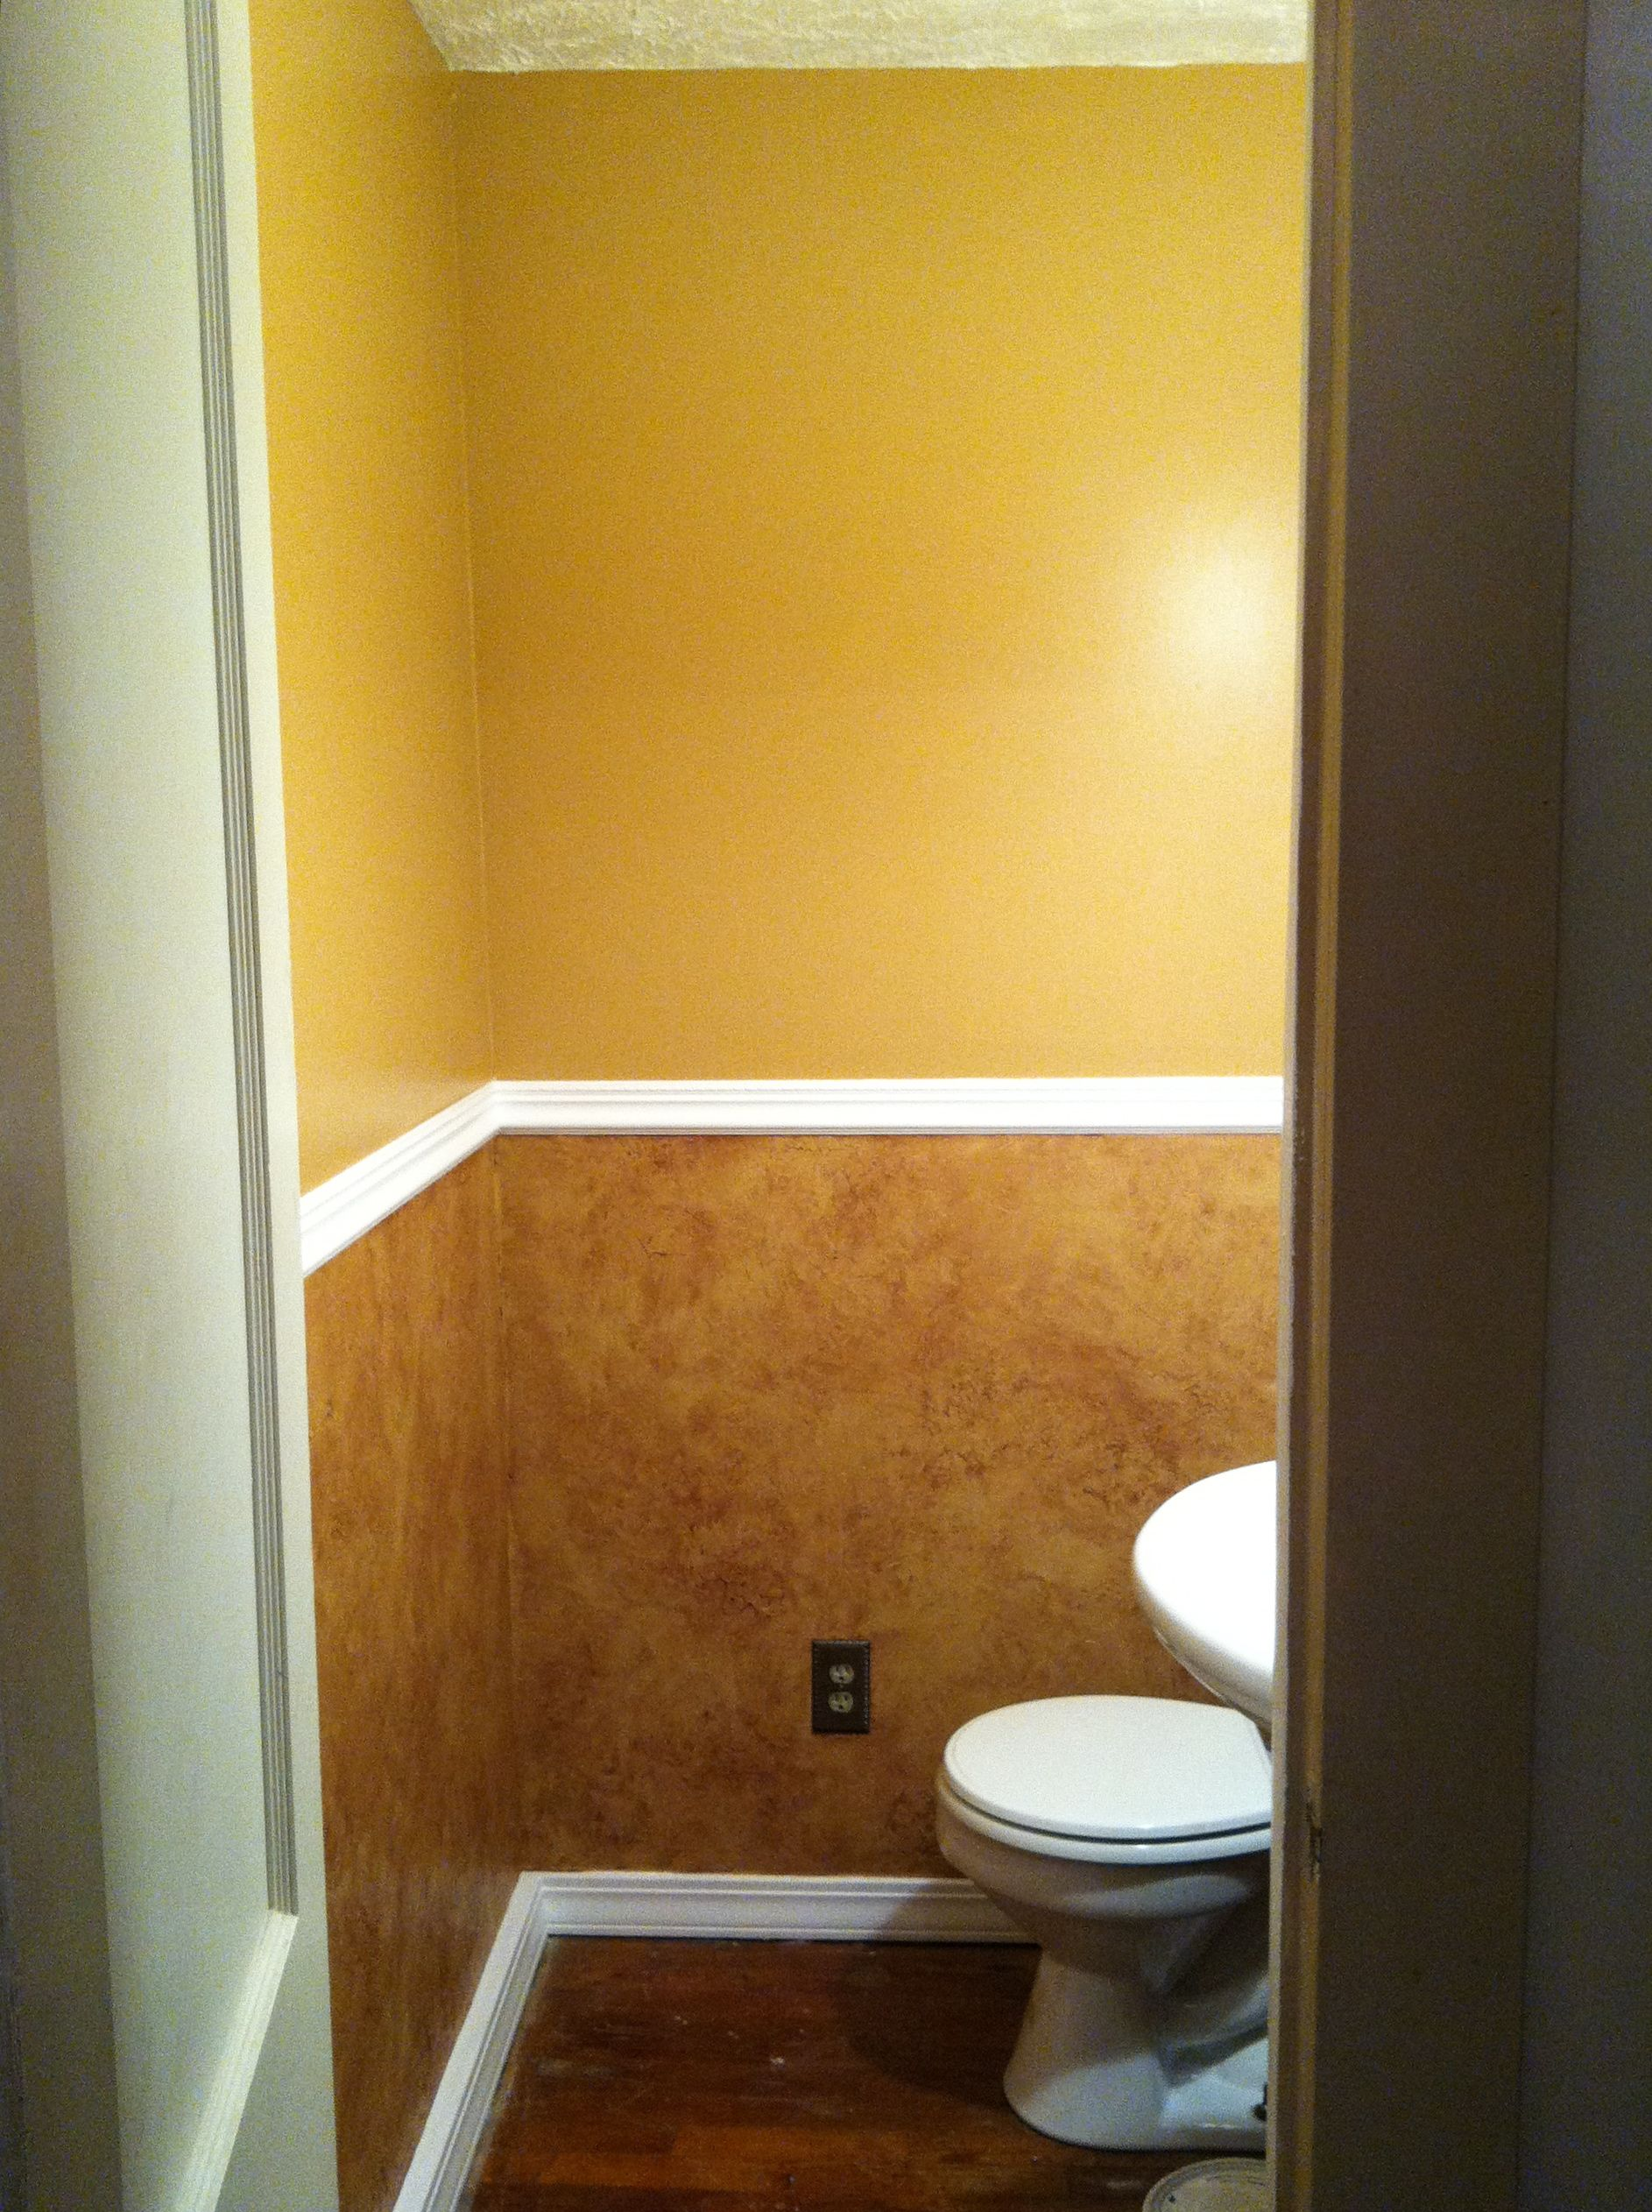 1/2 Bath After I Painted It In Behr Peanut Butter Satin With Faux Finish  Below.